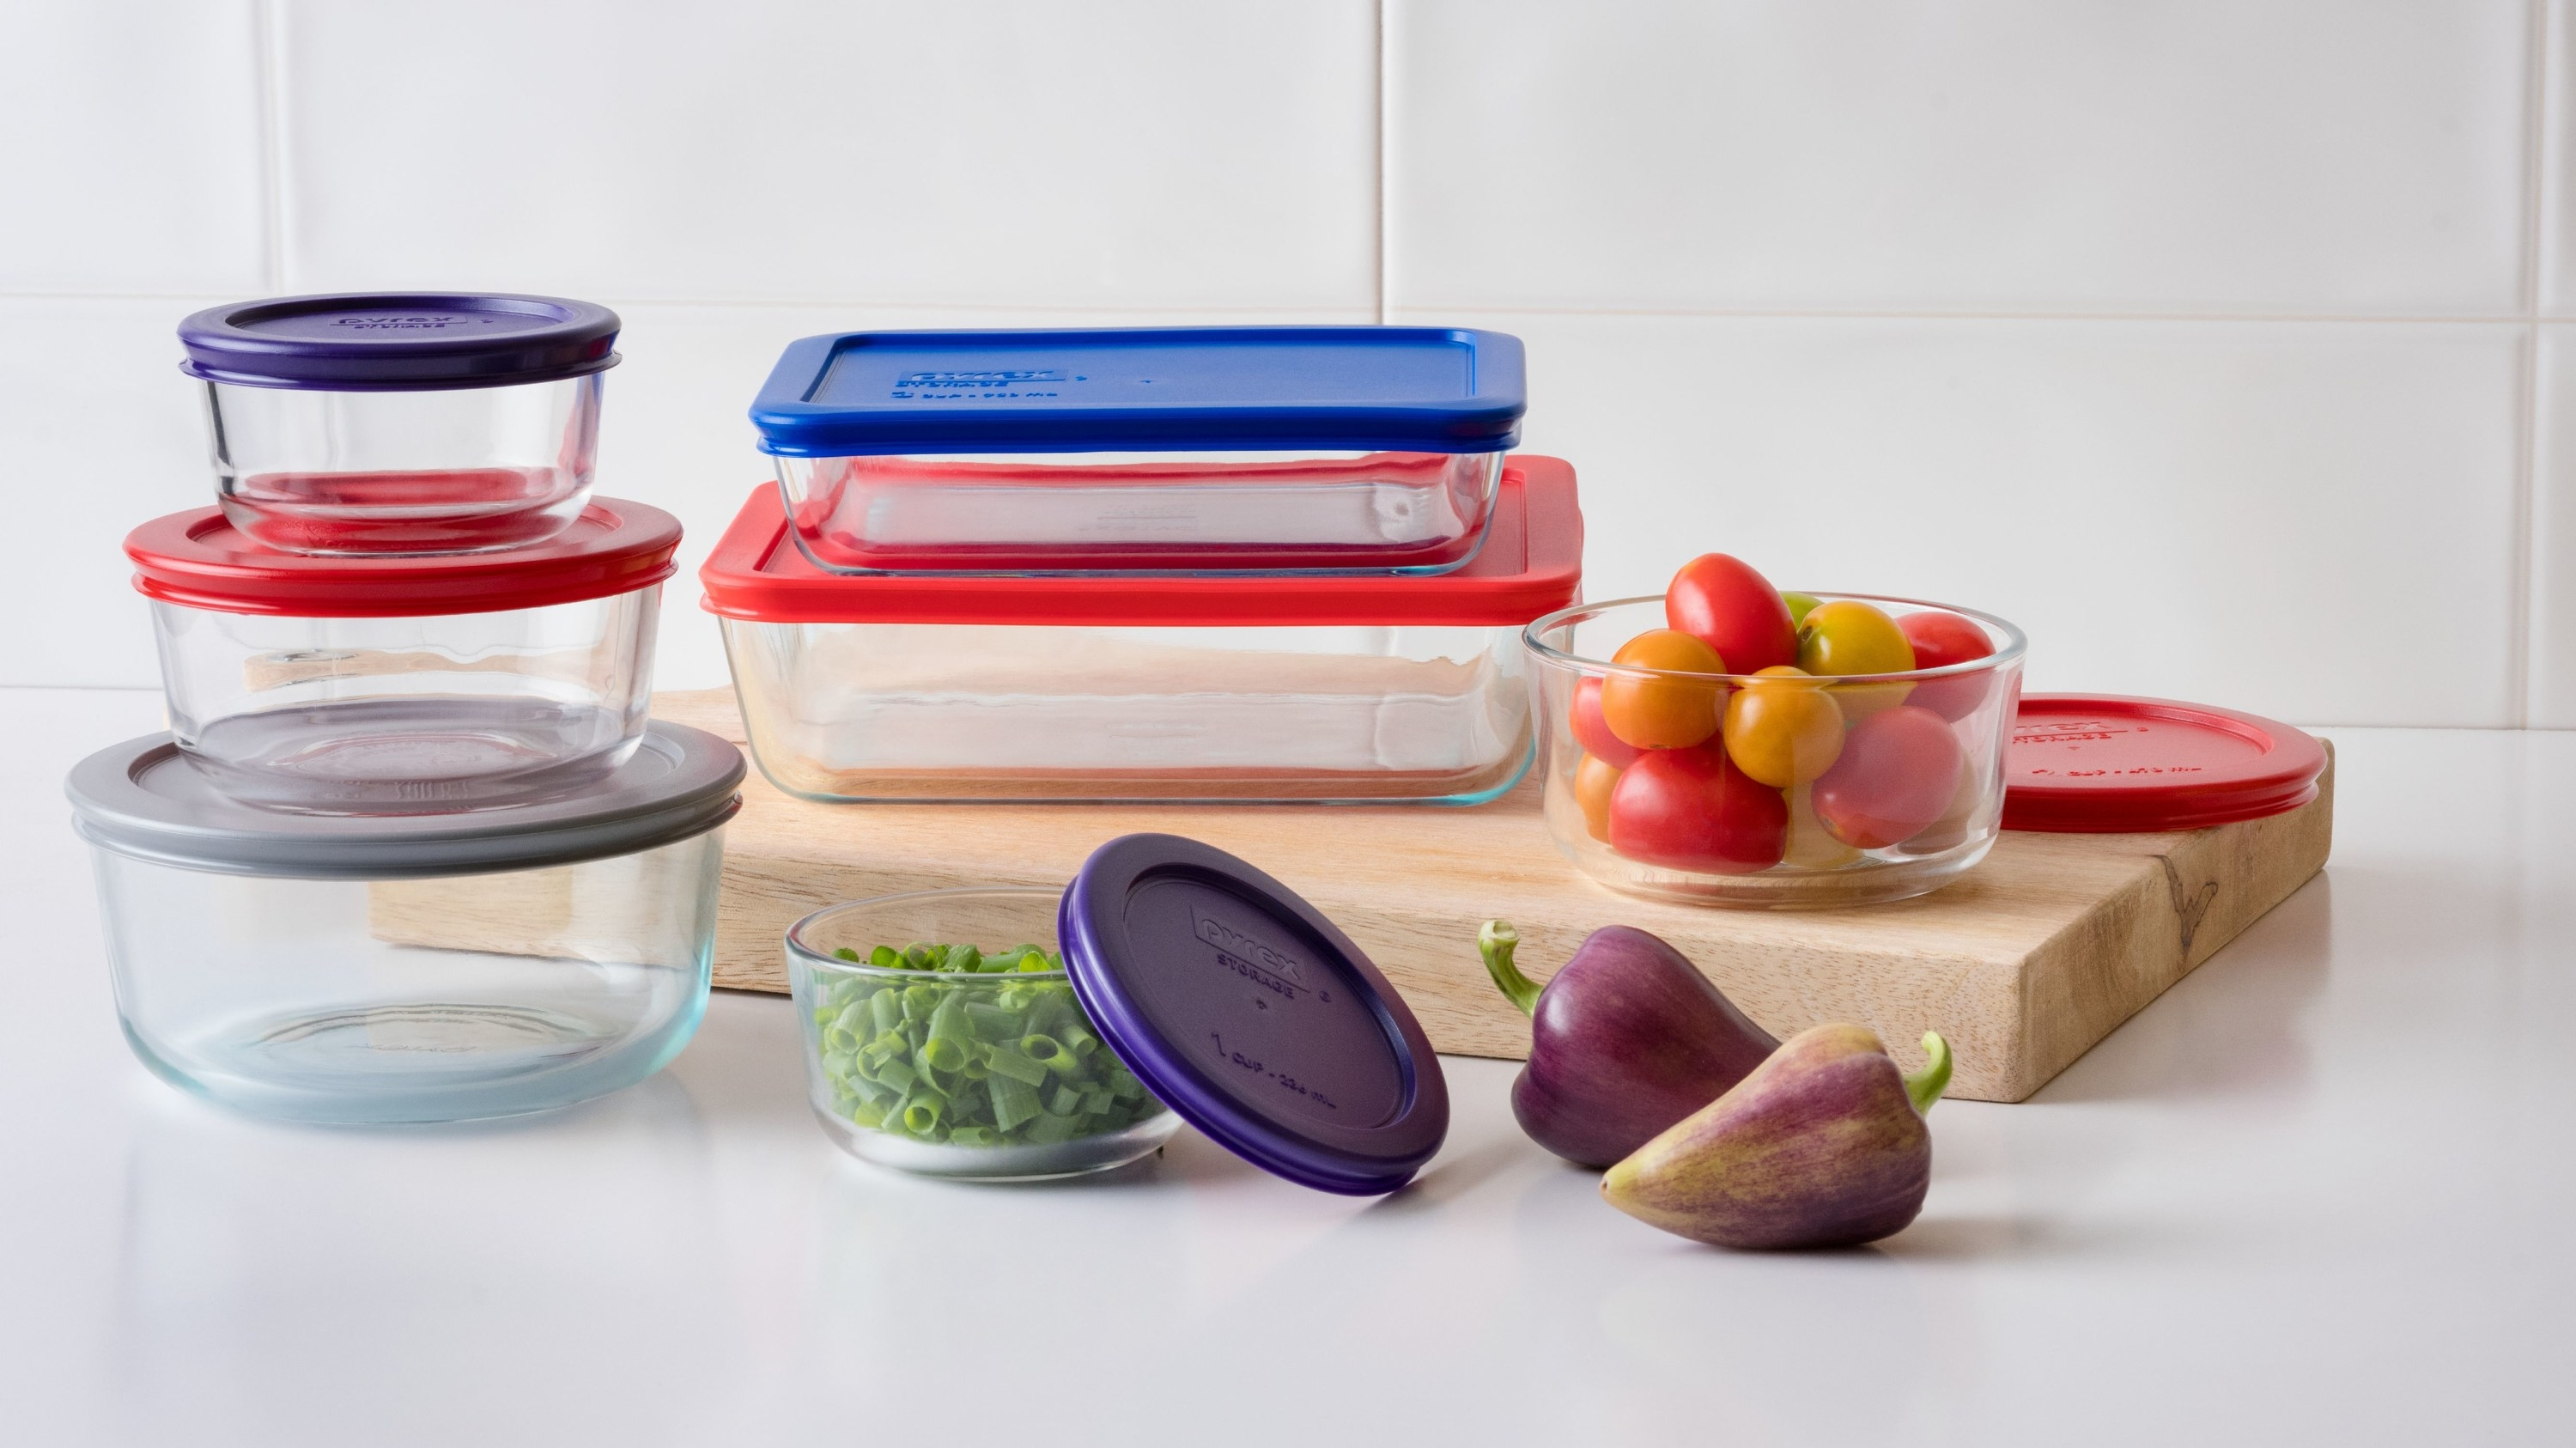 Pyrex bakeware set with purple, gray, red and blue lids